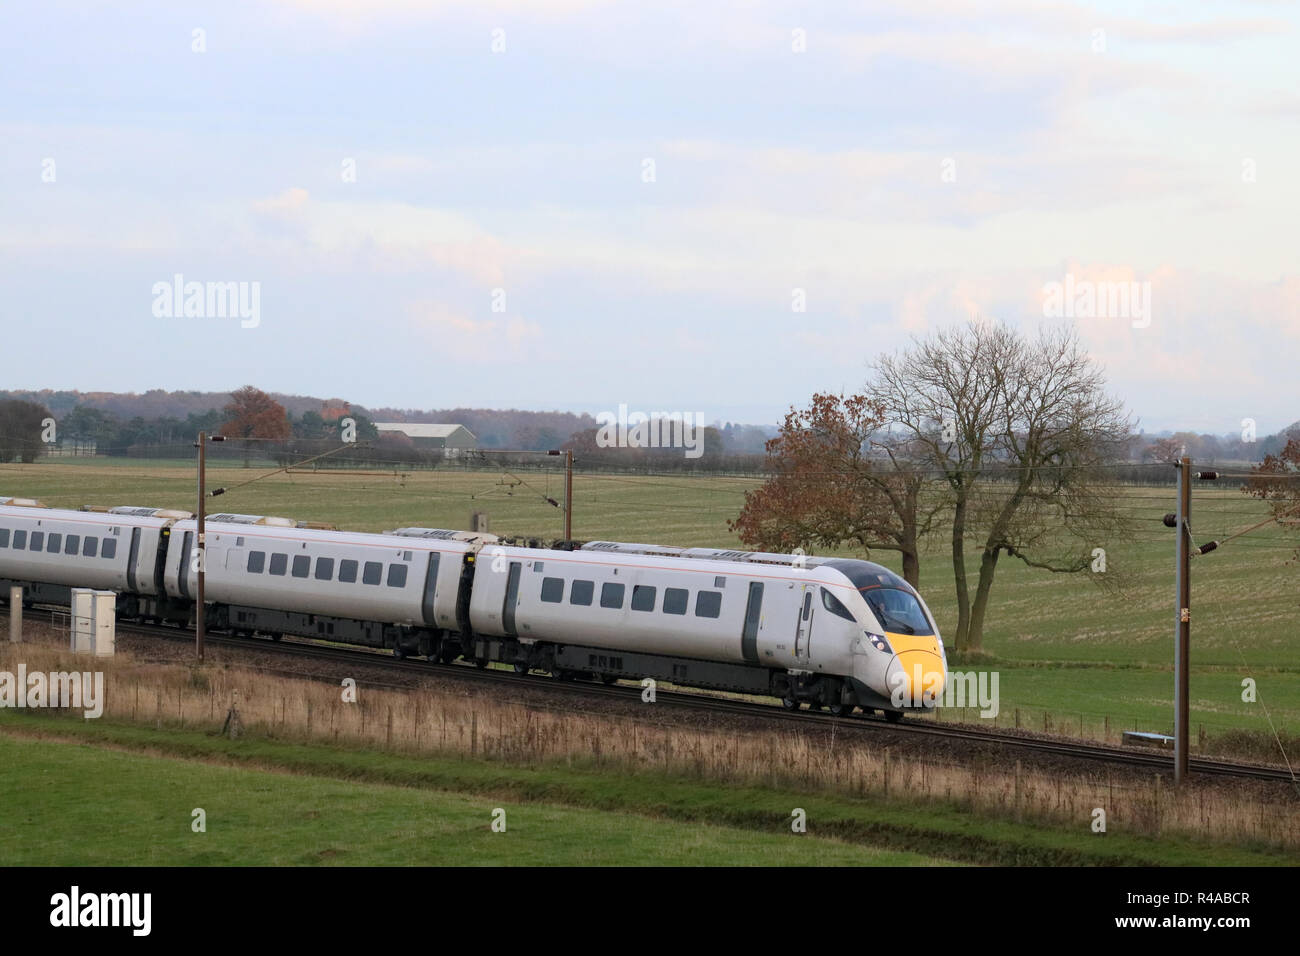 New class 800 bi-mode multiple unit train on empty coaching stock movement just south of Colton junction on east Coast Main Line south of York in 2018. - Stock Image